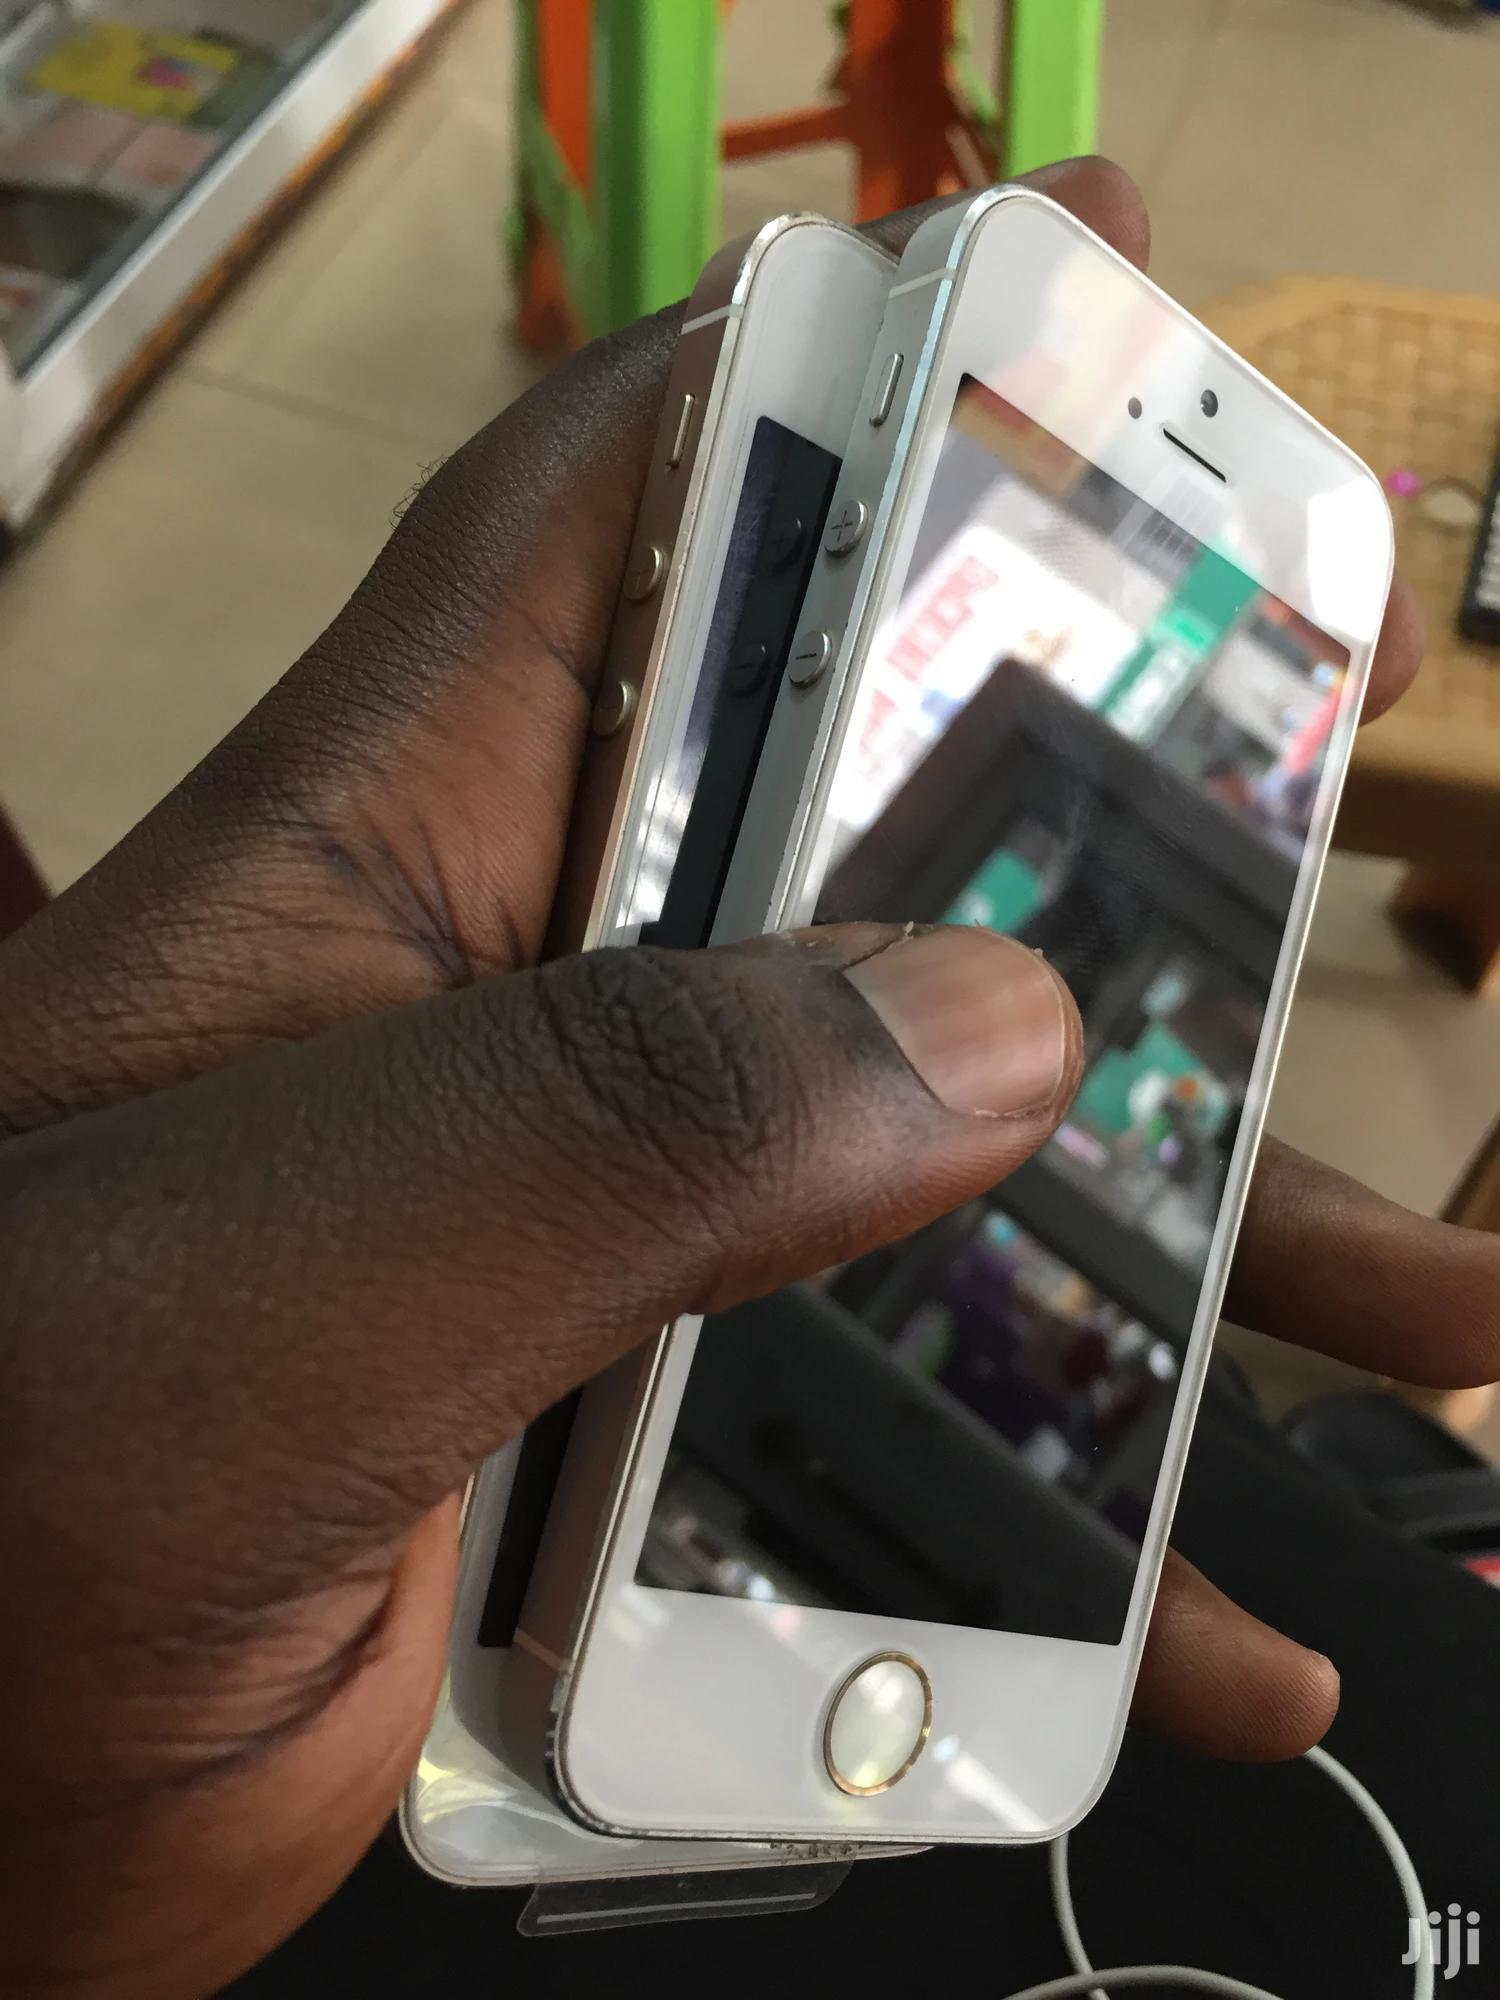 Apple iPhone 5s 16 GB   Mobile Phones for sale in Achimota, Greater Accra, Ghana